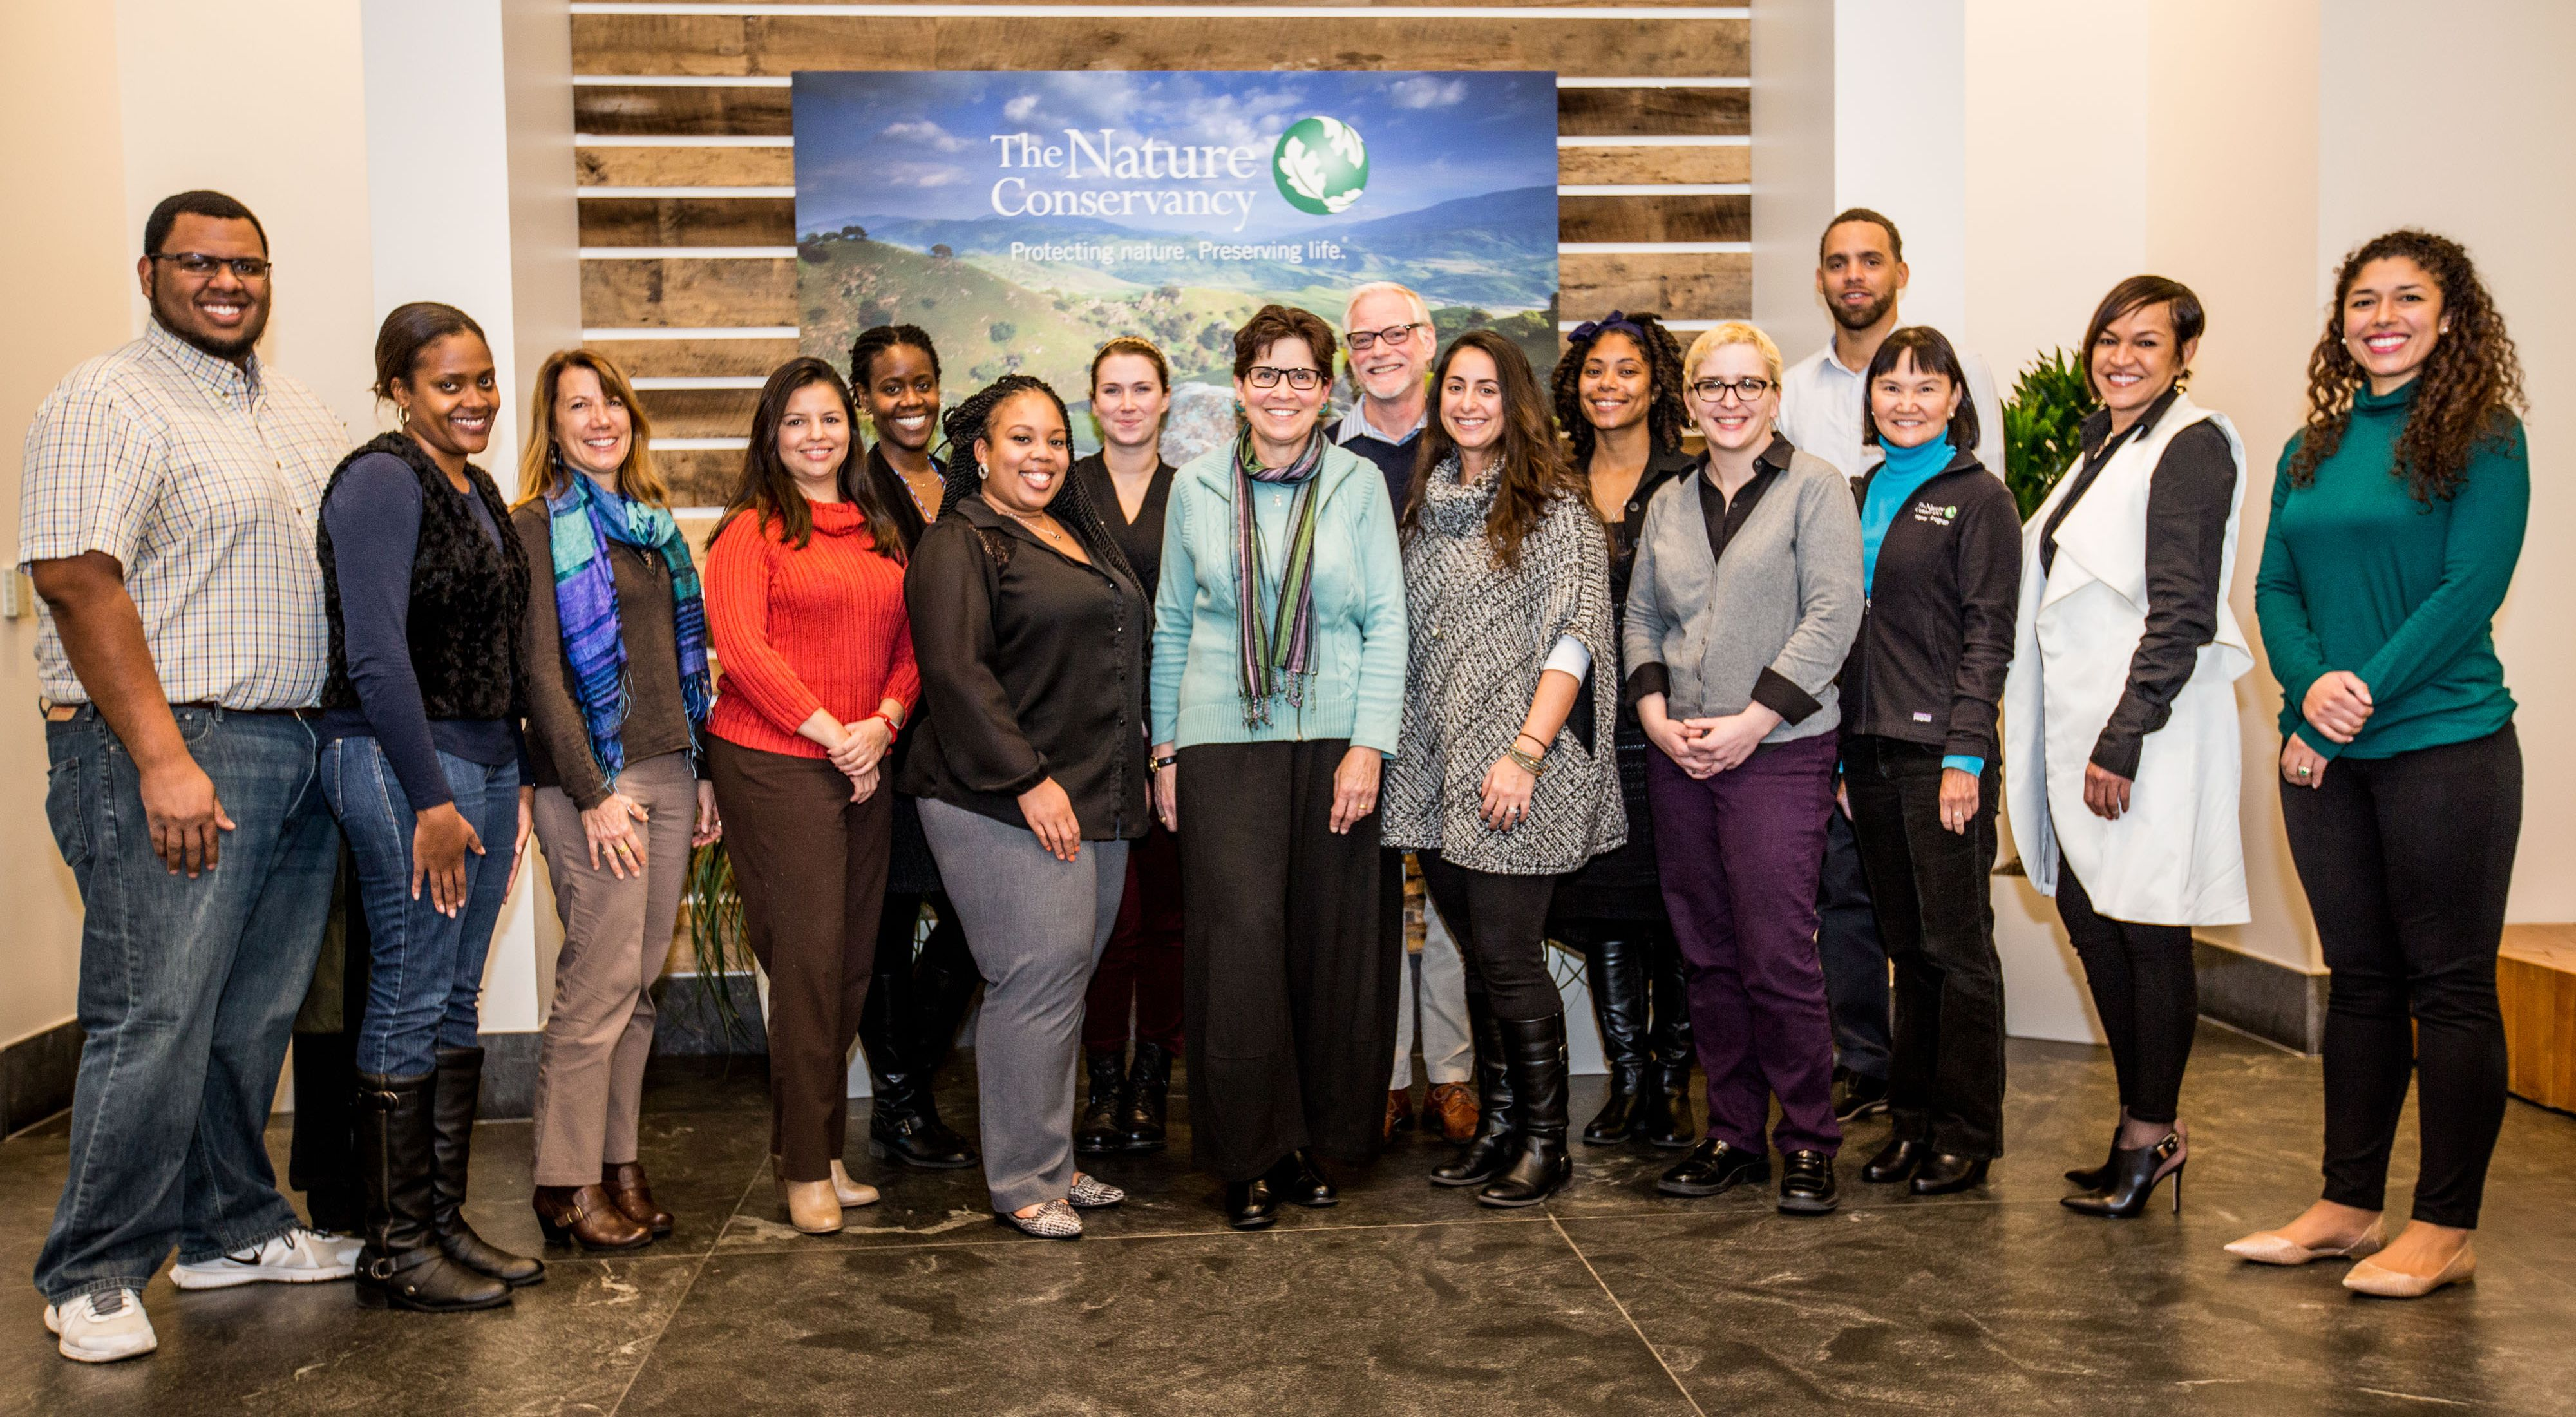 The 12 member Employee Resources Group Steering Committee poses at the Worldwide Office.